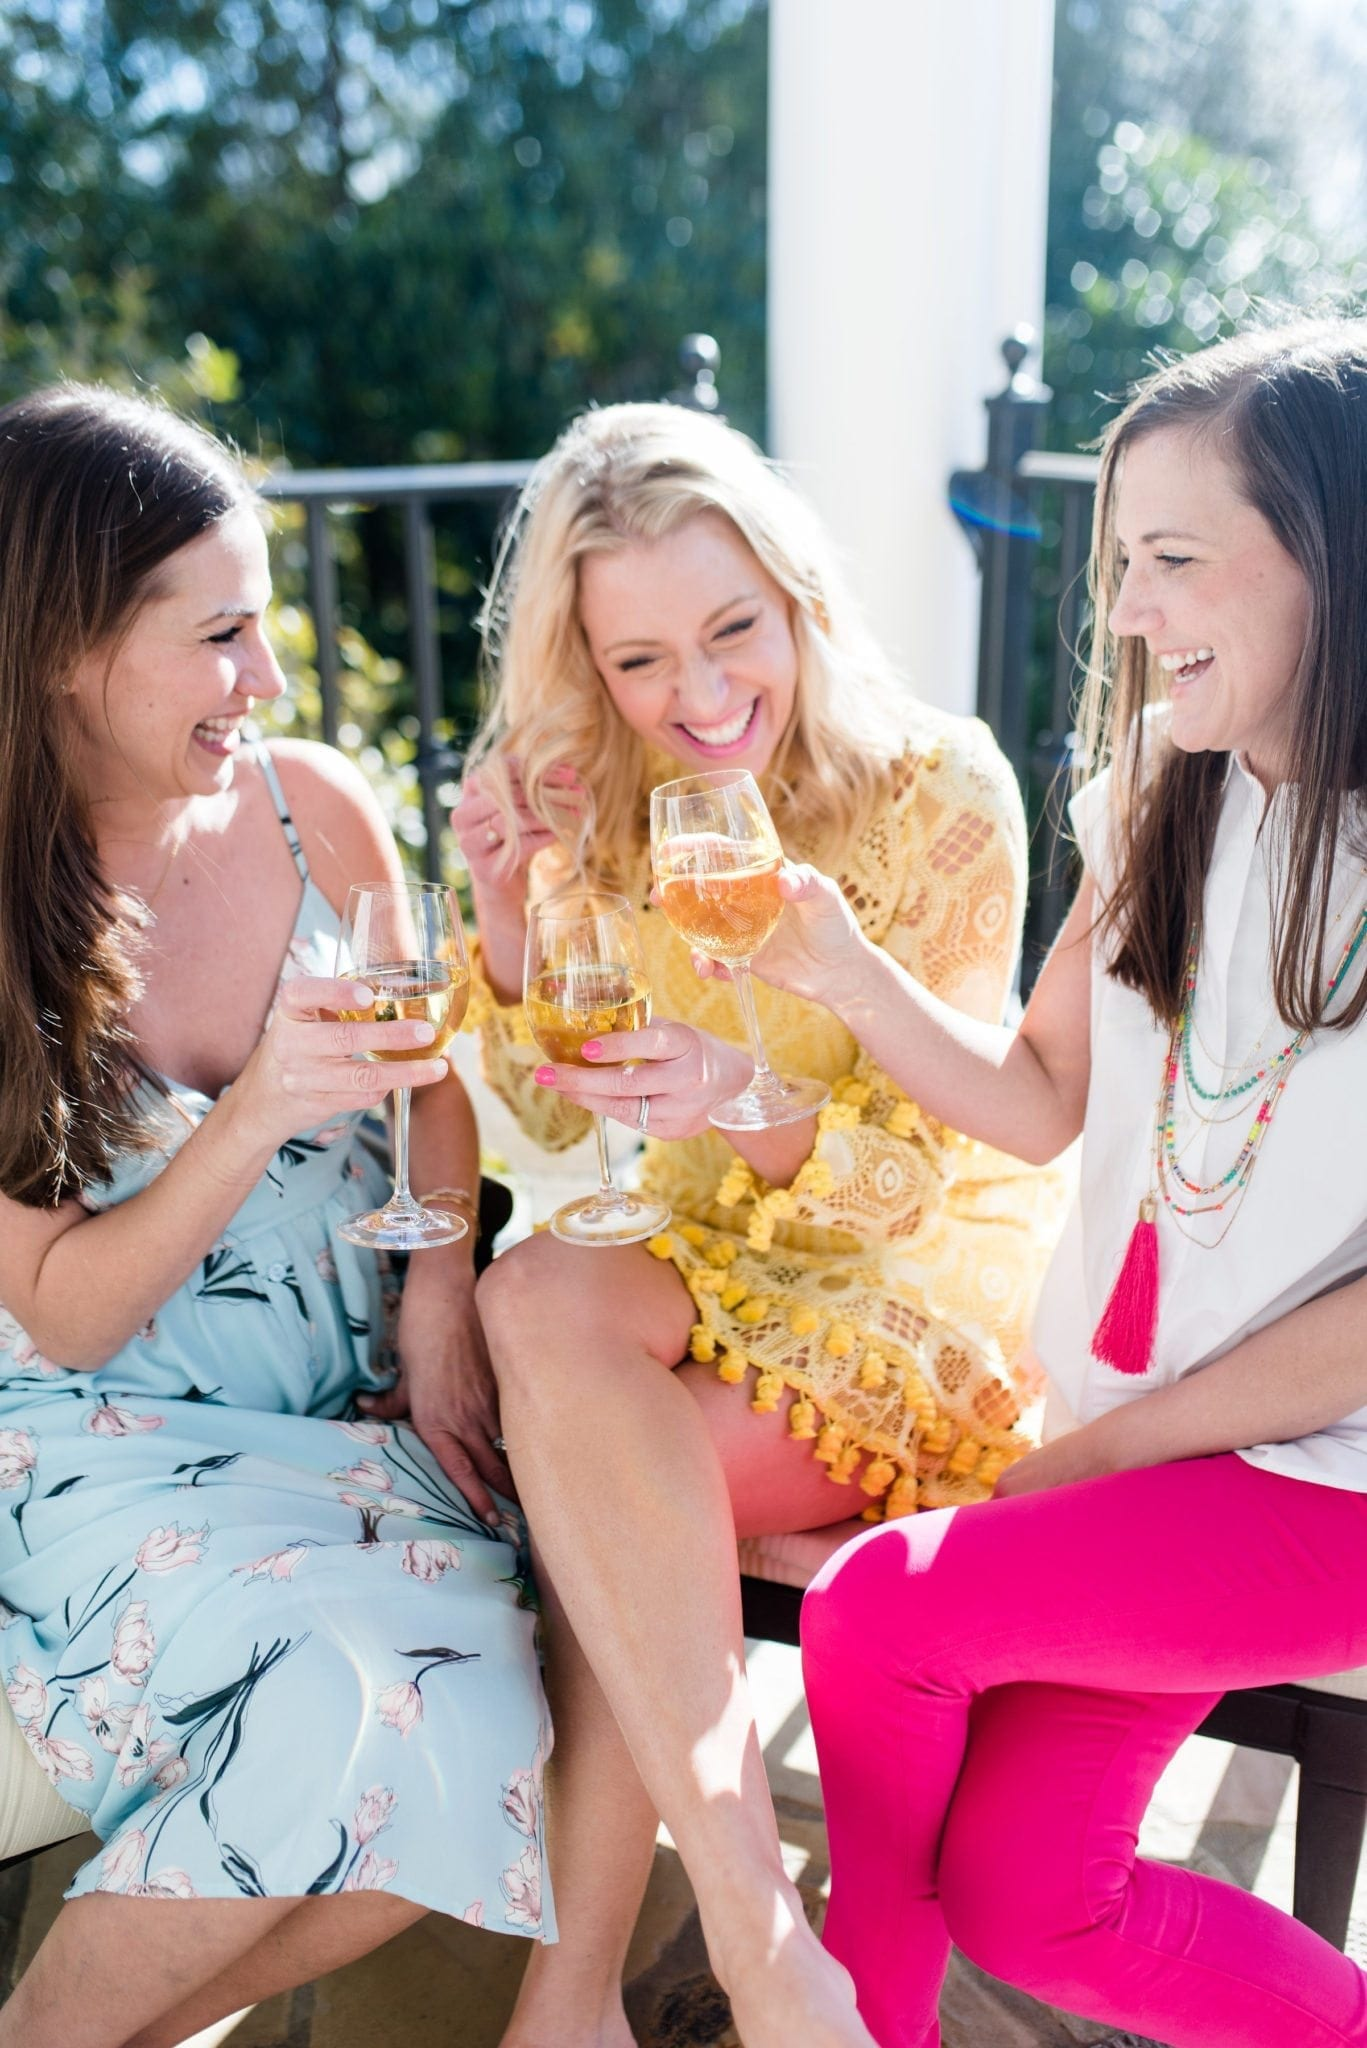 Spring outfits and girl time. Yellow dress, pink pants and floral maxi dress for pretty summer outfits!